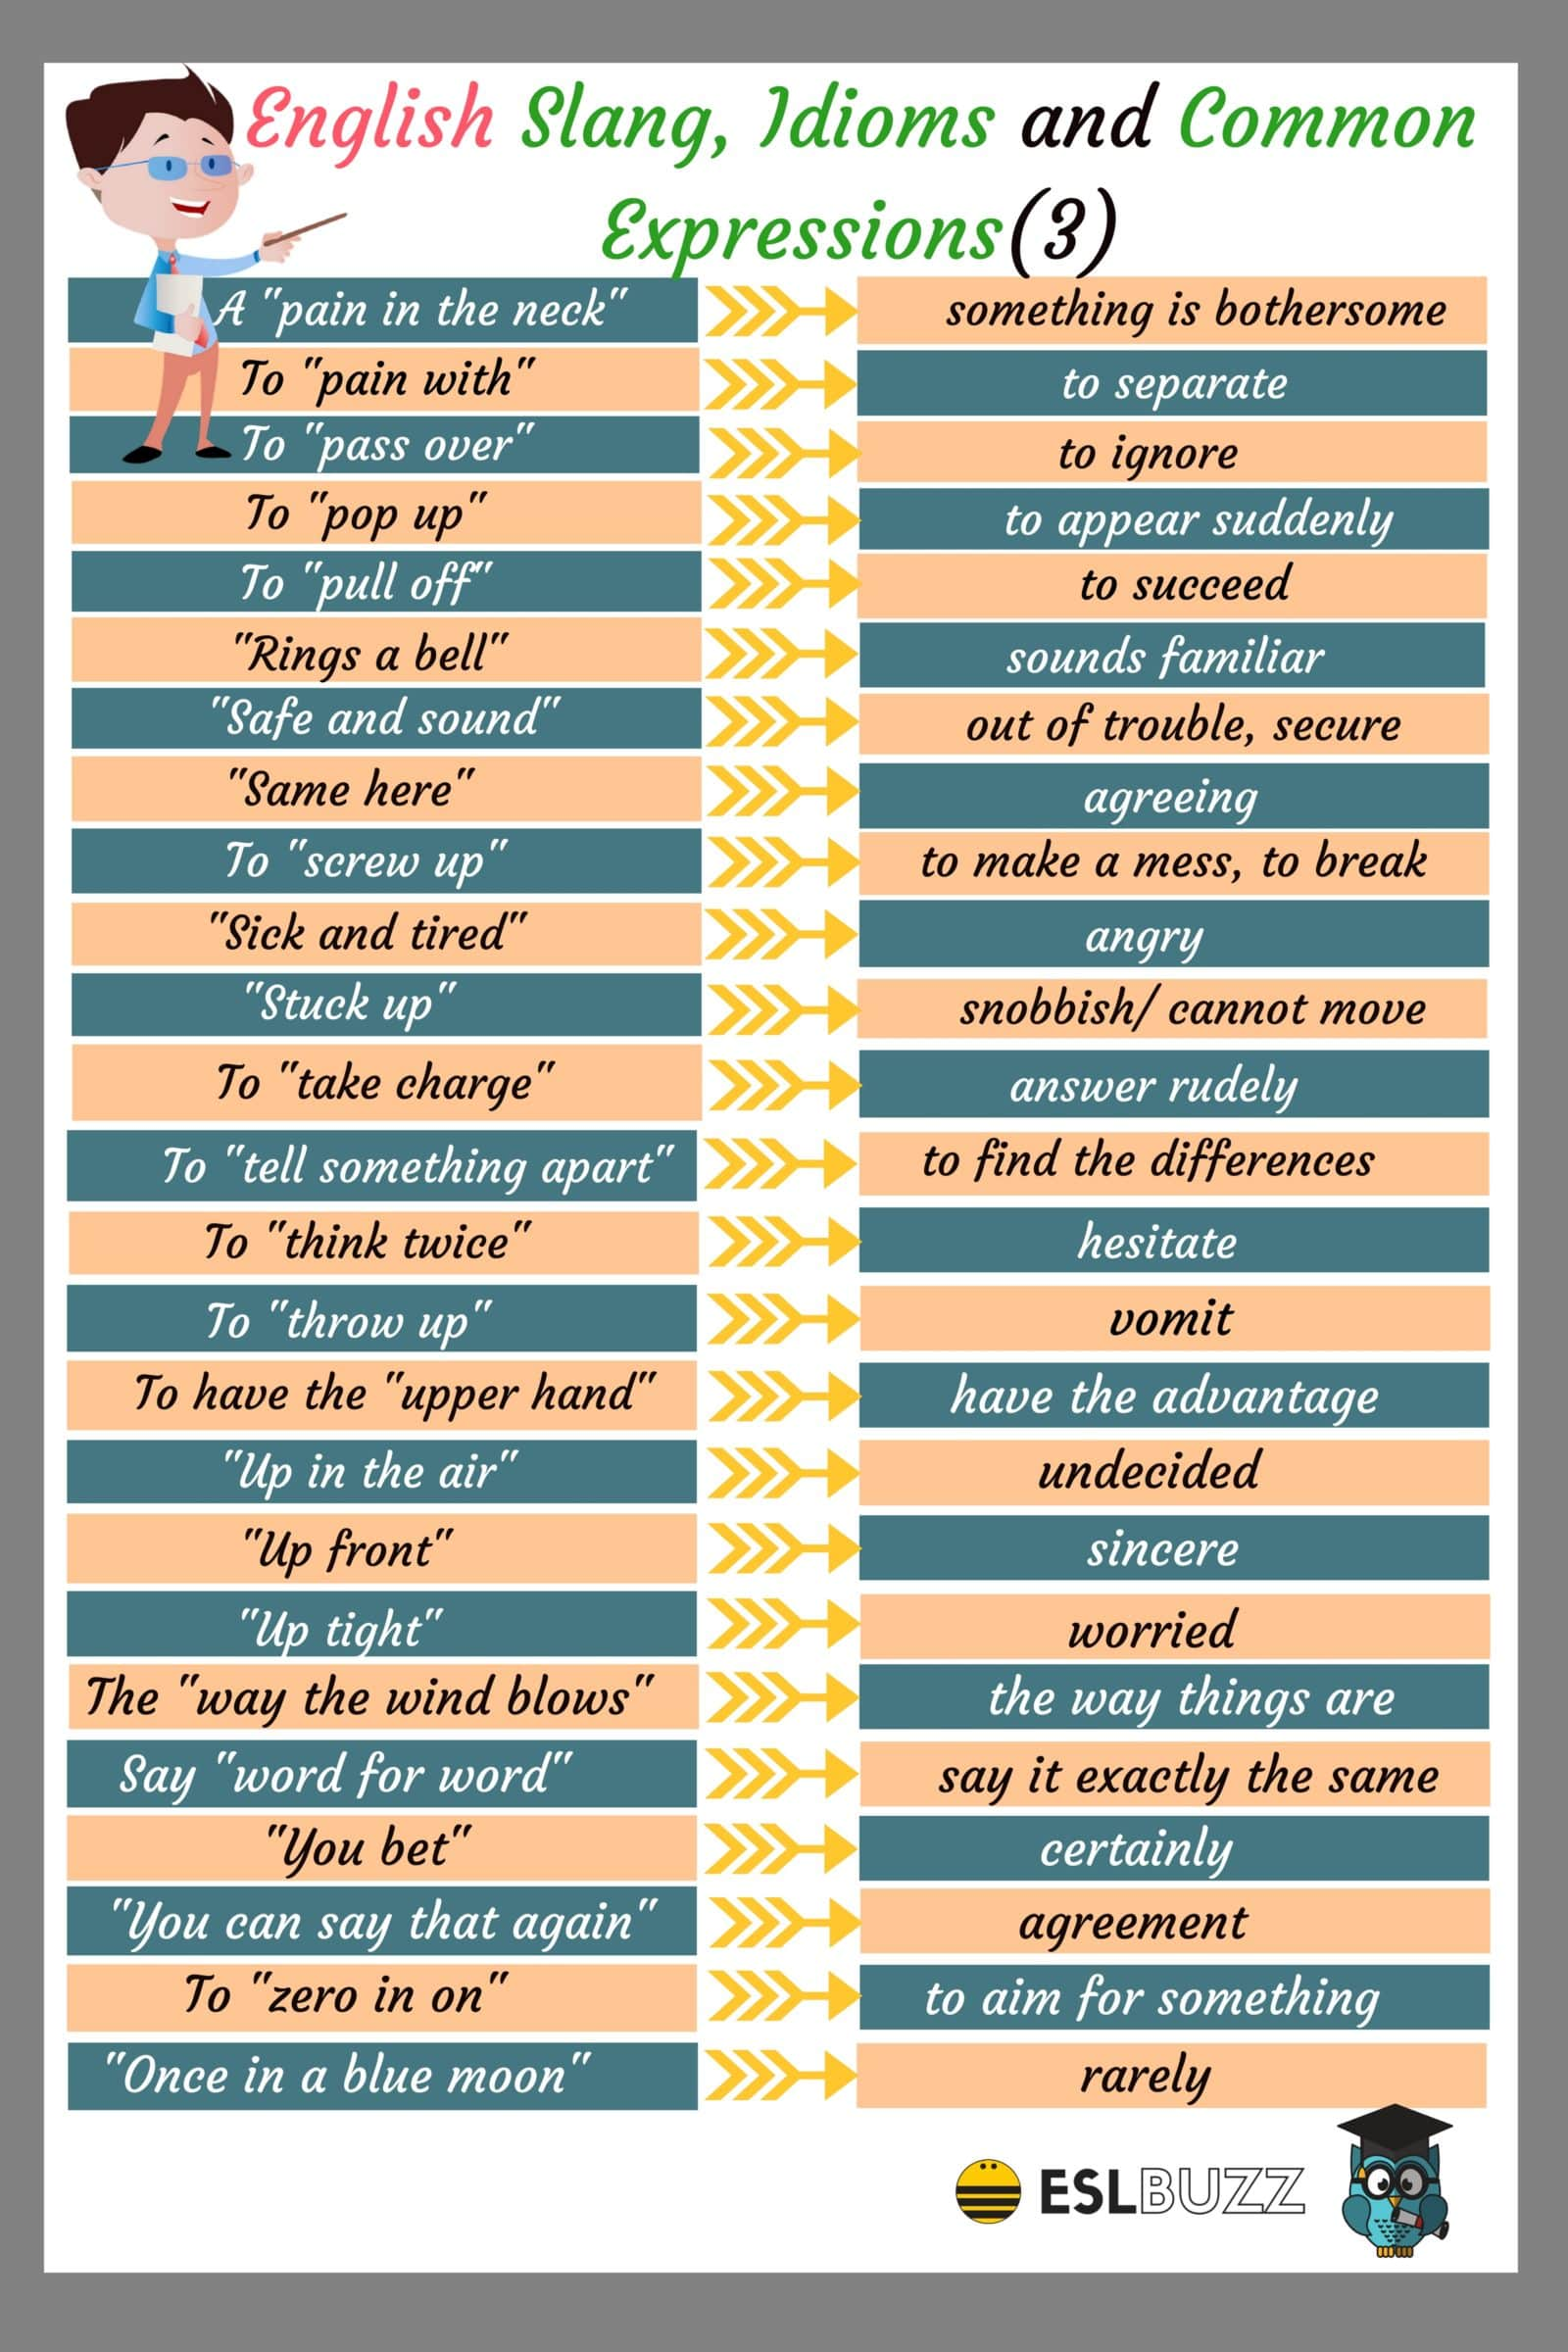 Slang Words, Idioms and Common Expressions